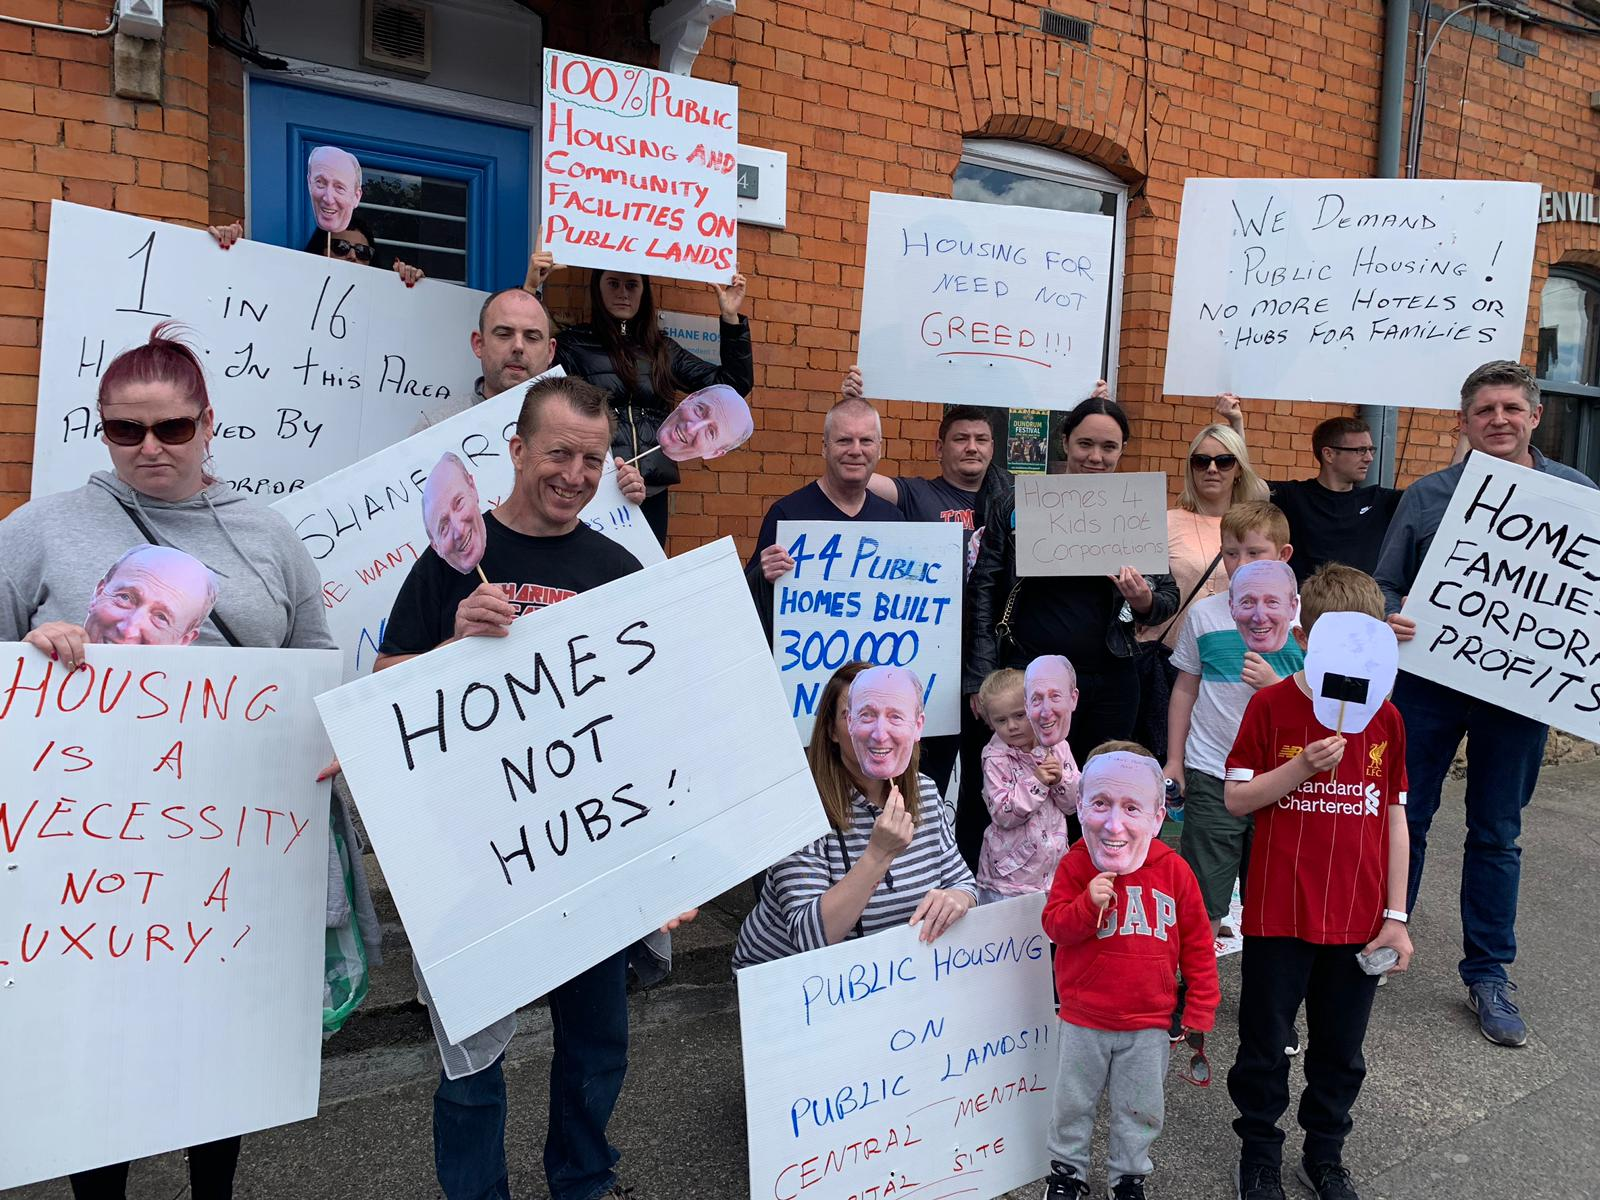 Éirígí housing protest at the constituency office of Shane Ross in Dundrum, June 2019